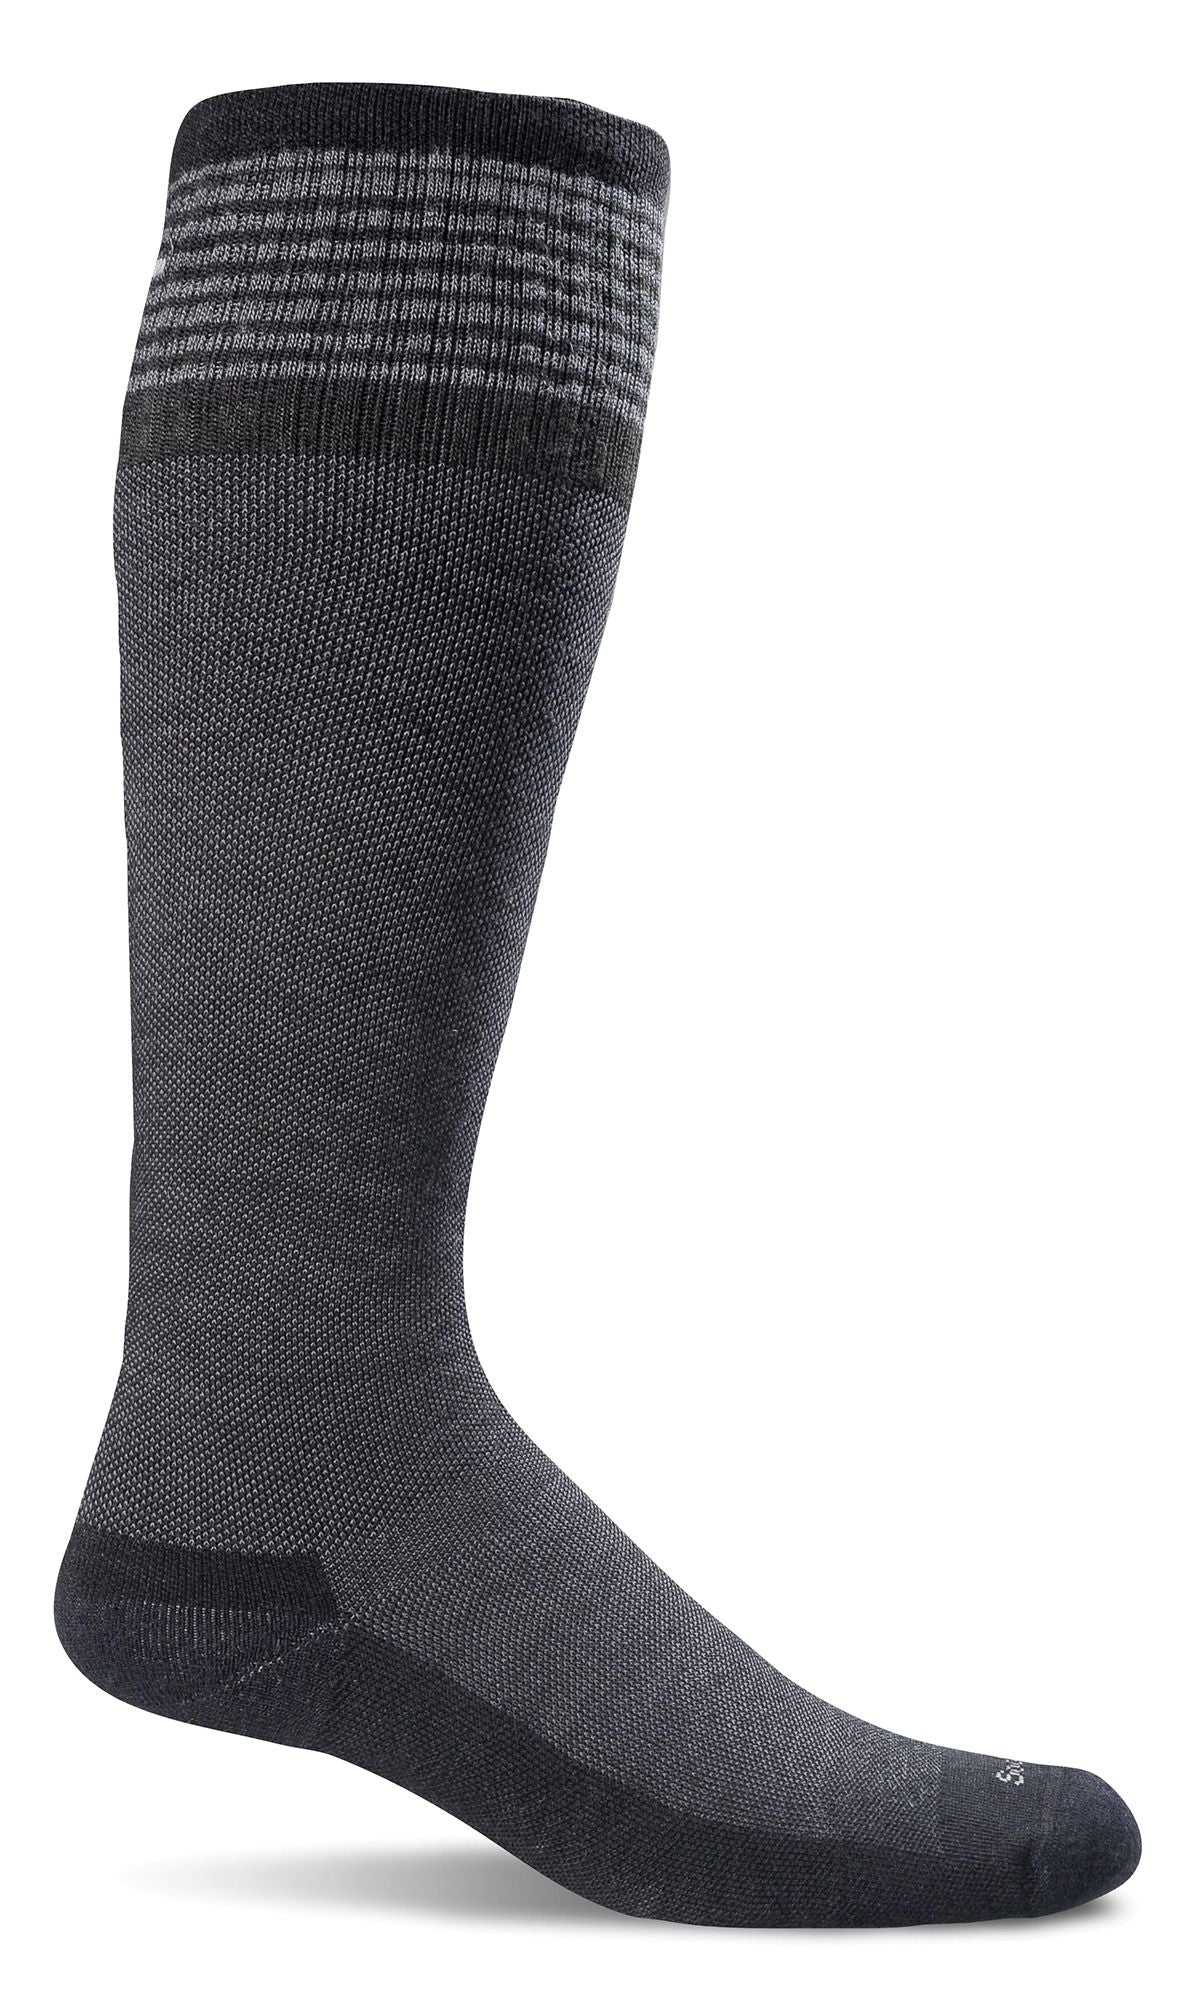 Sockwell - Women's Firm Compression Elevation SW4W